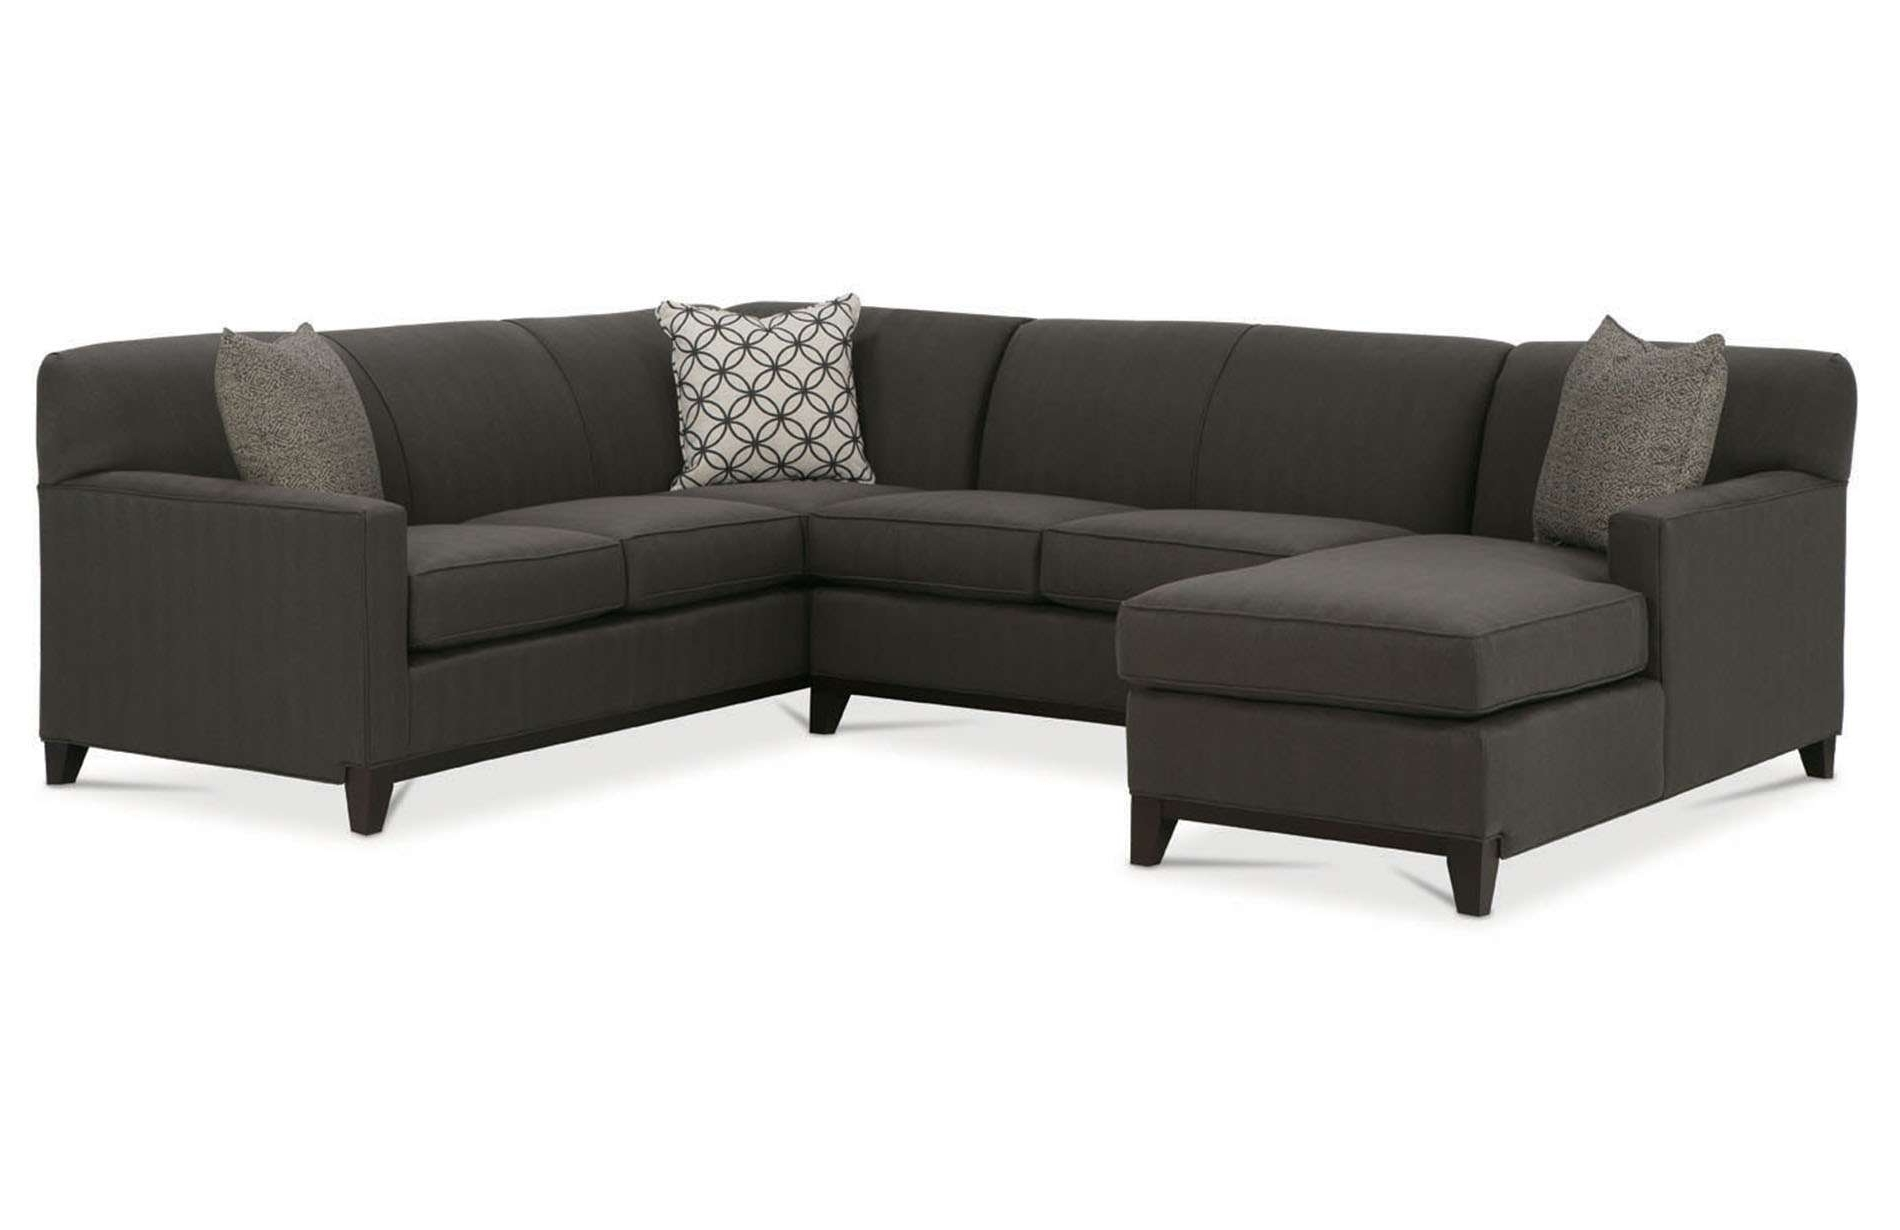 Preferred Furniture : Sectional Sofa Recliner Sectional Couch Instructions Throughout Jamaica Sectional Sofas (View 15 of 20)